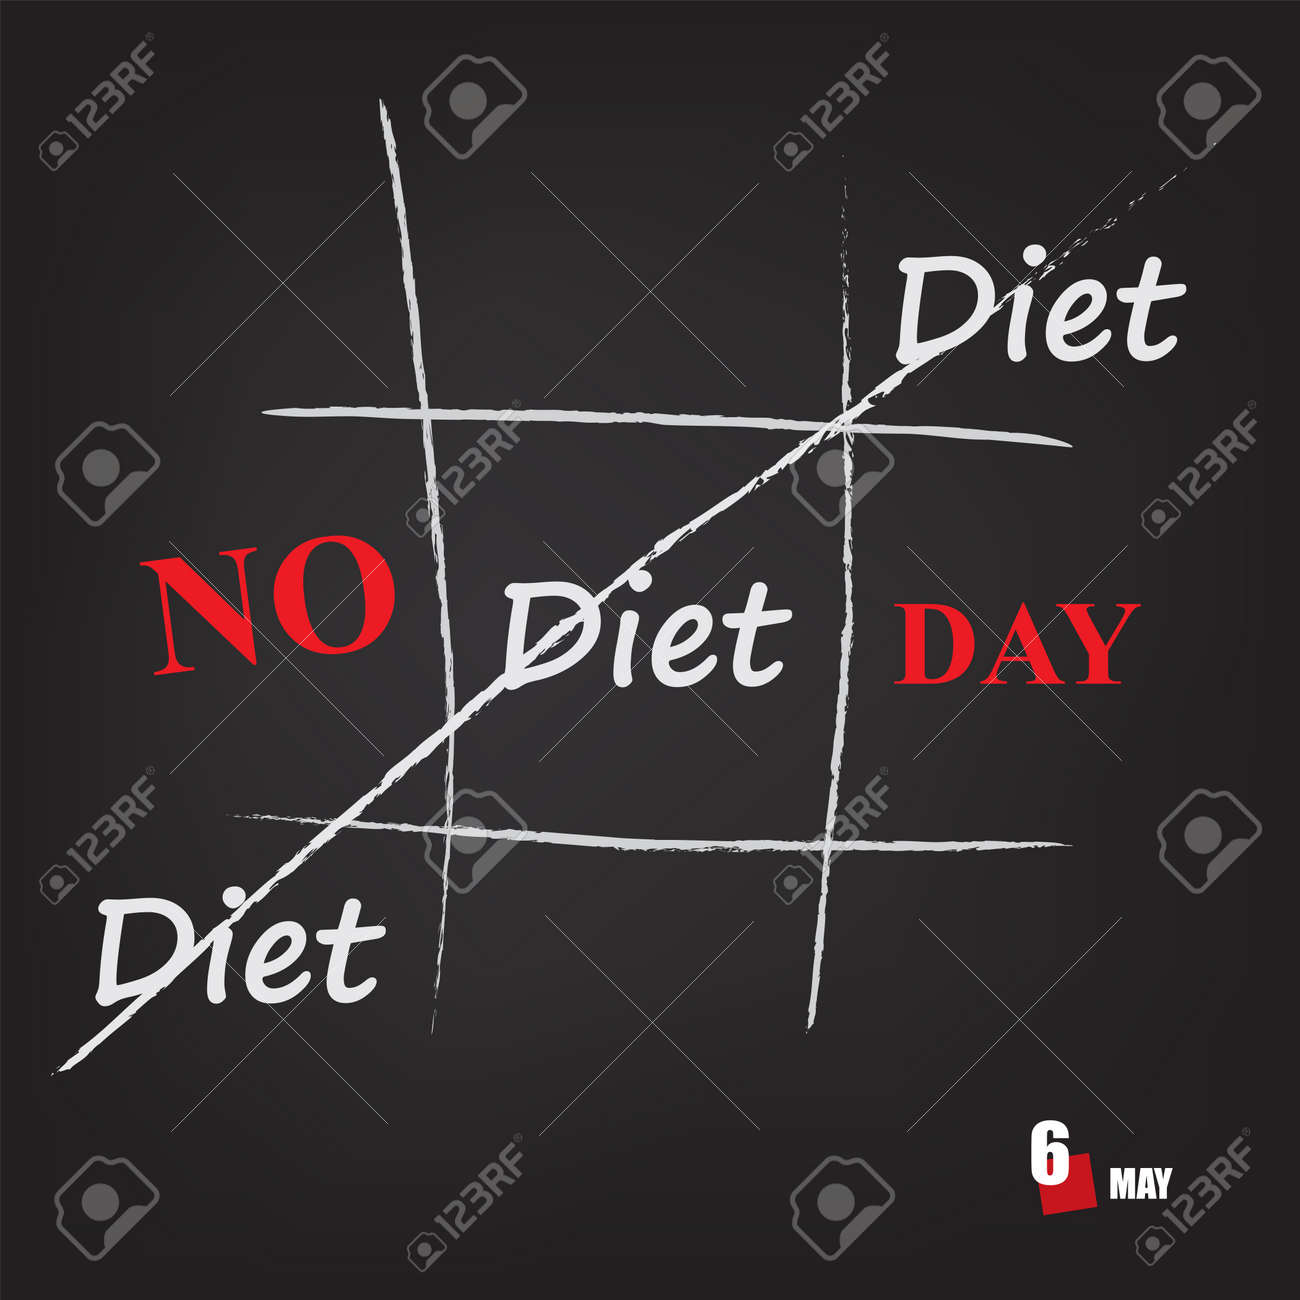 The calendar event is celebrated in may - No Diet Day - 169676008